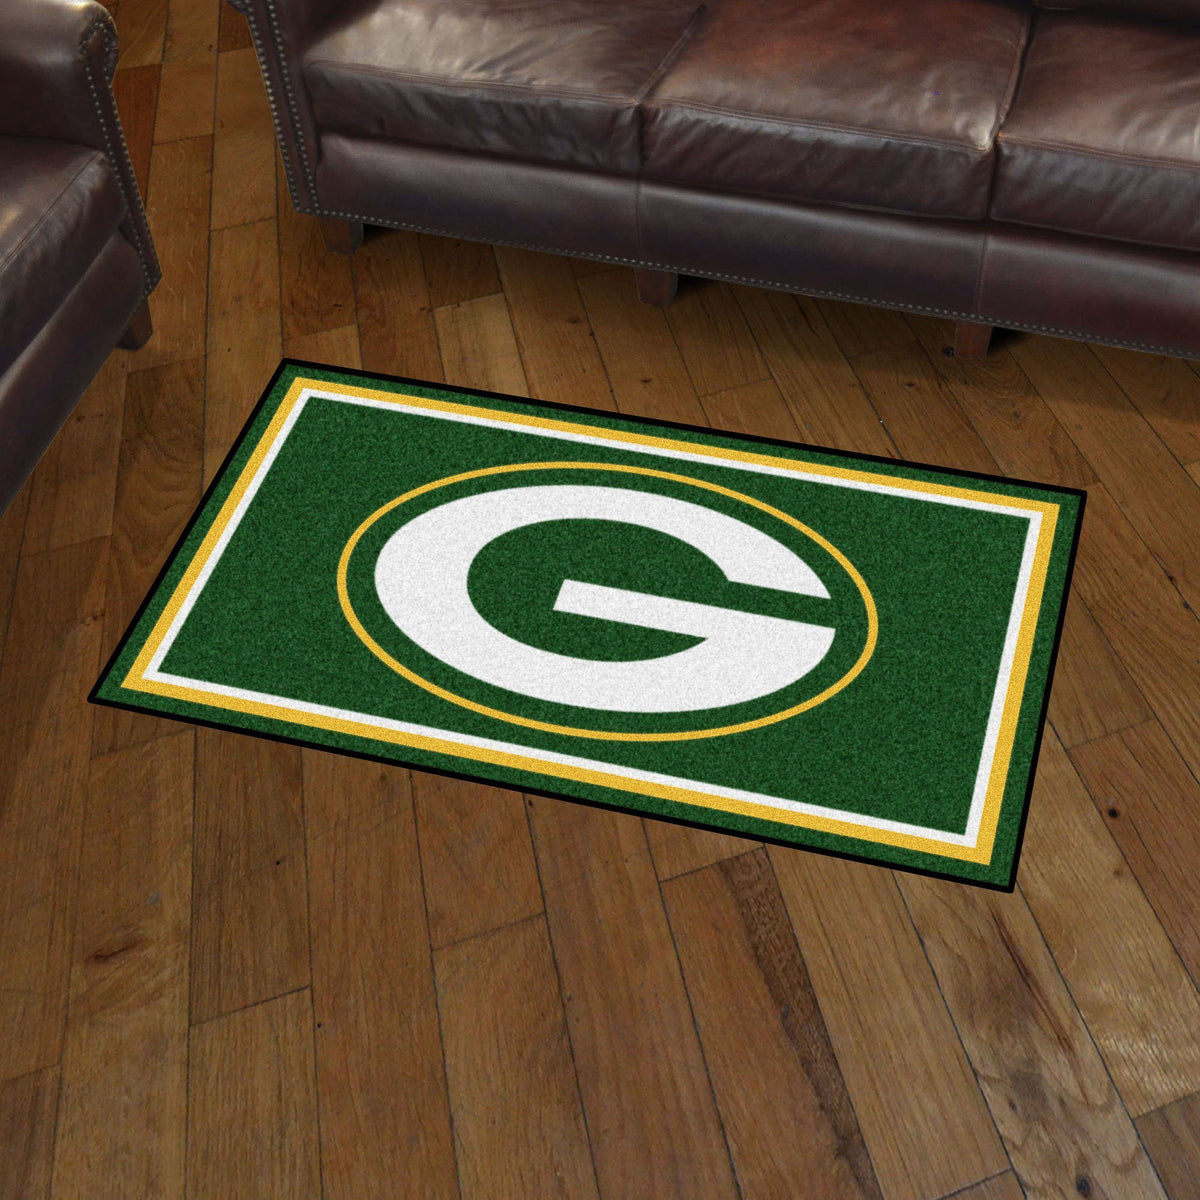 NFL - 3' x 5' Rug NFL Mats, Plush Rugs, 3x5 Rug, NFL, Home Fan Mats Green Bay Packers